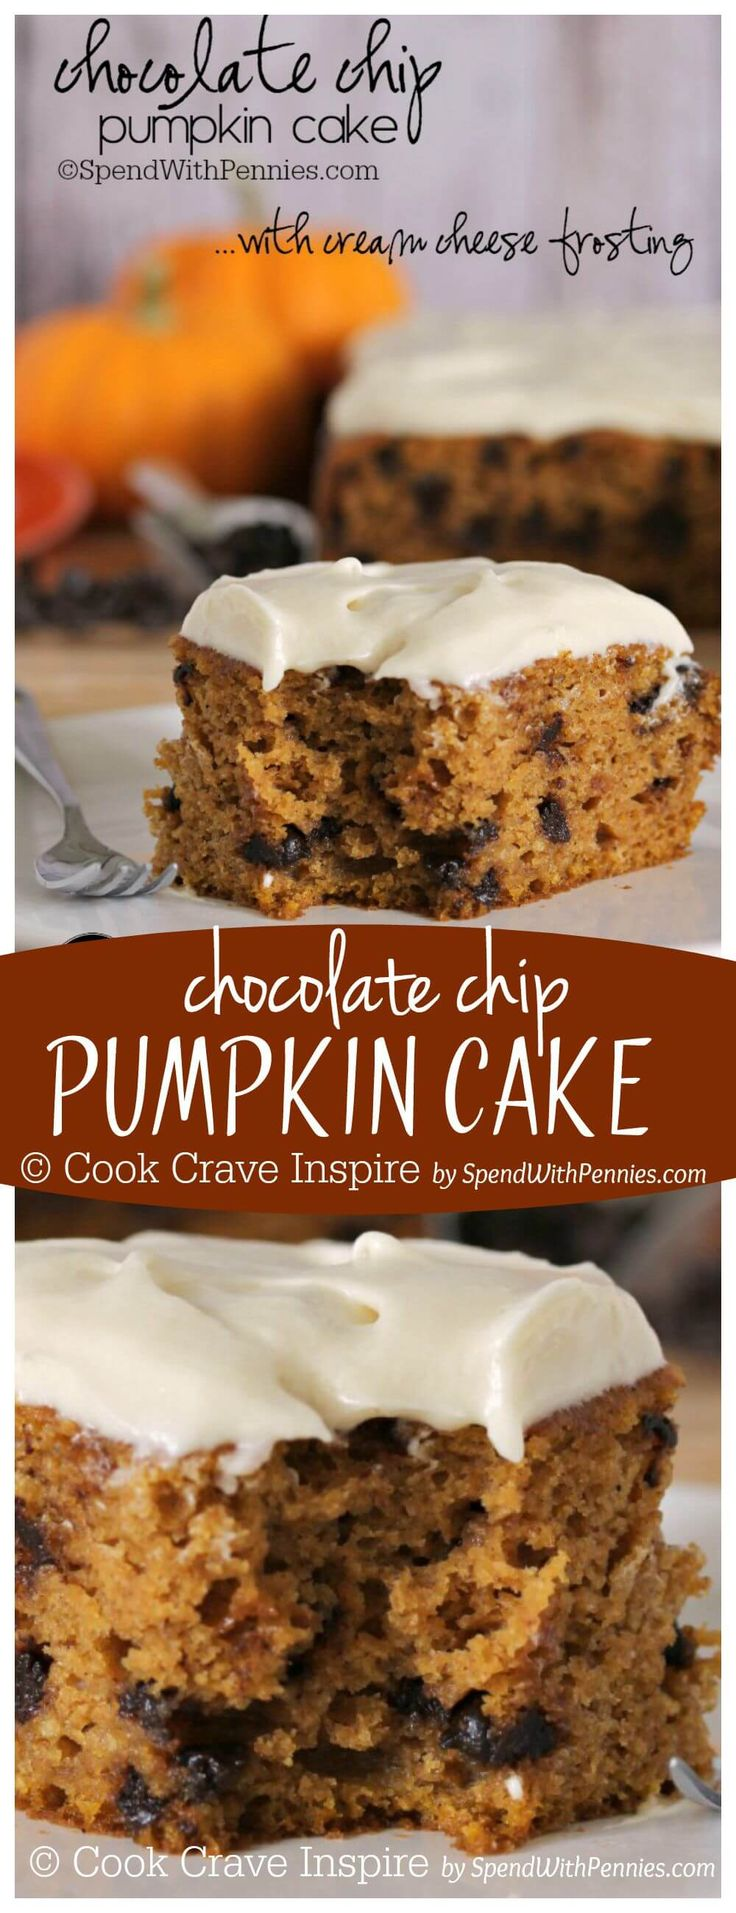 Best 20+ Chocolate pumpkin pie ideas on Pinterest | Pumpkin ...